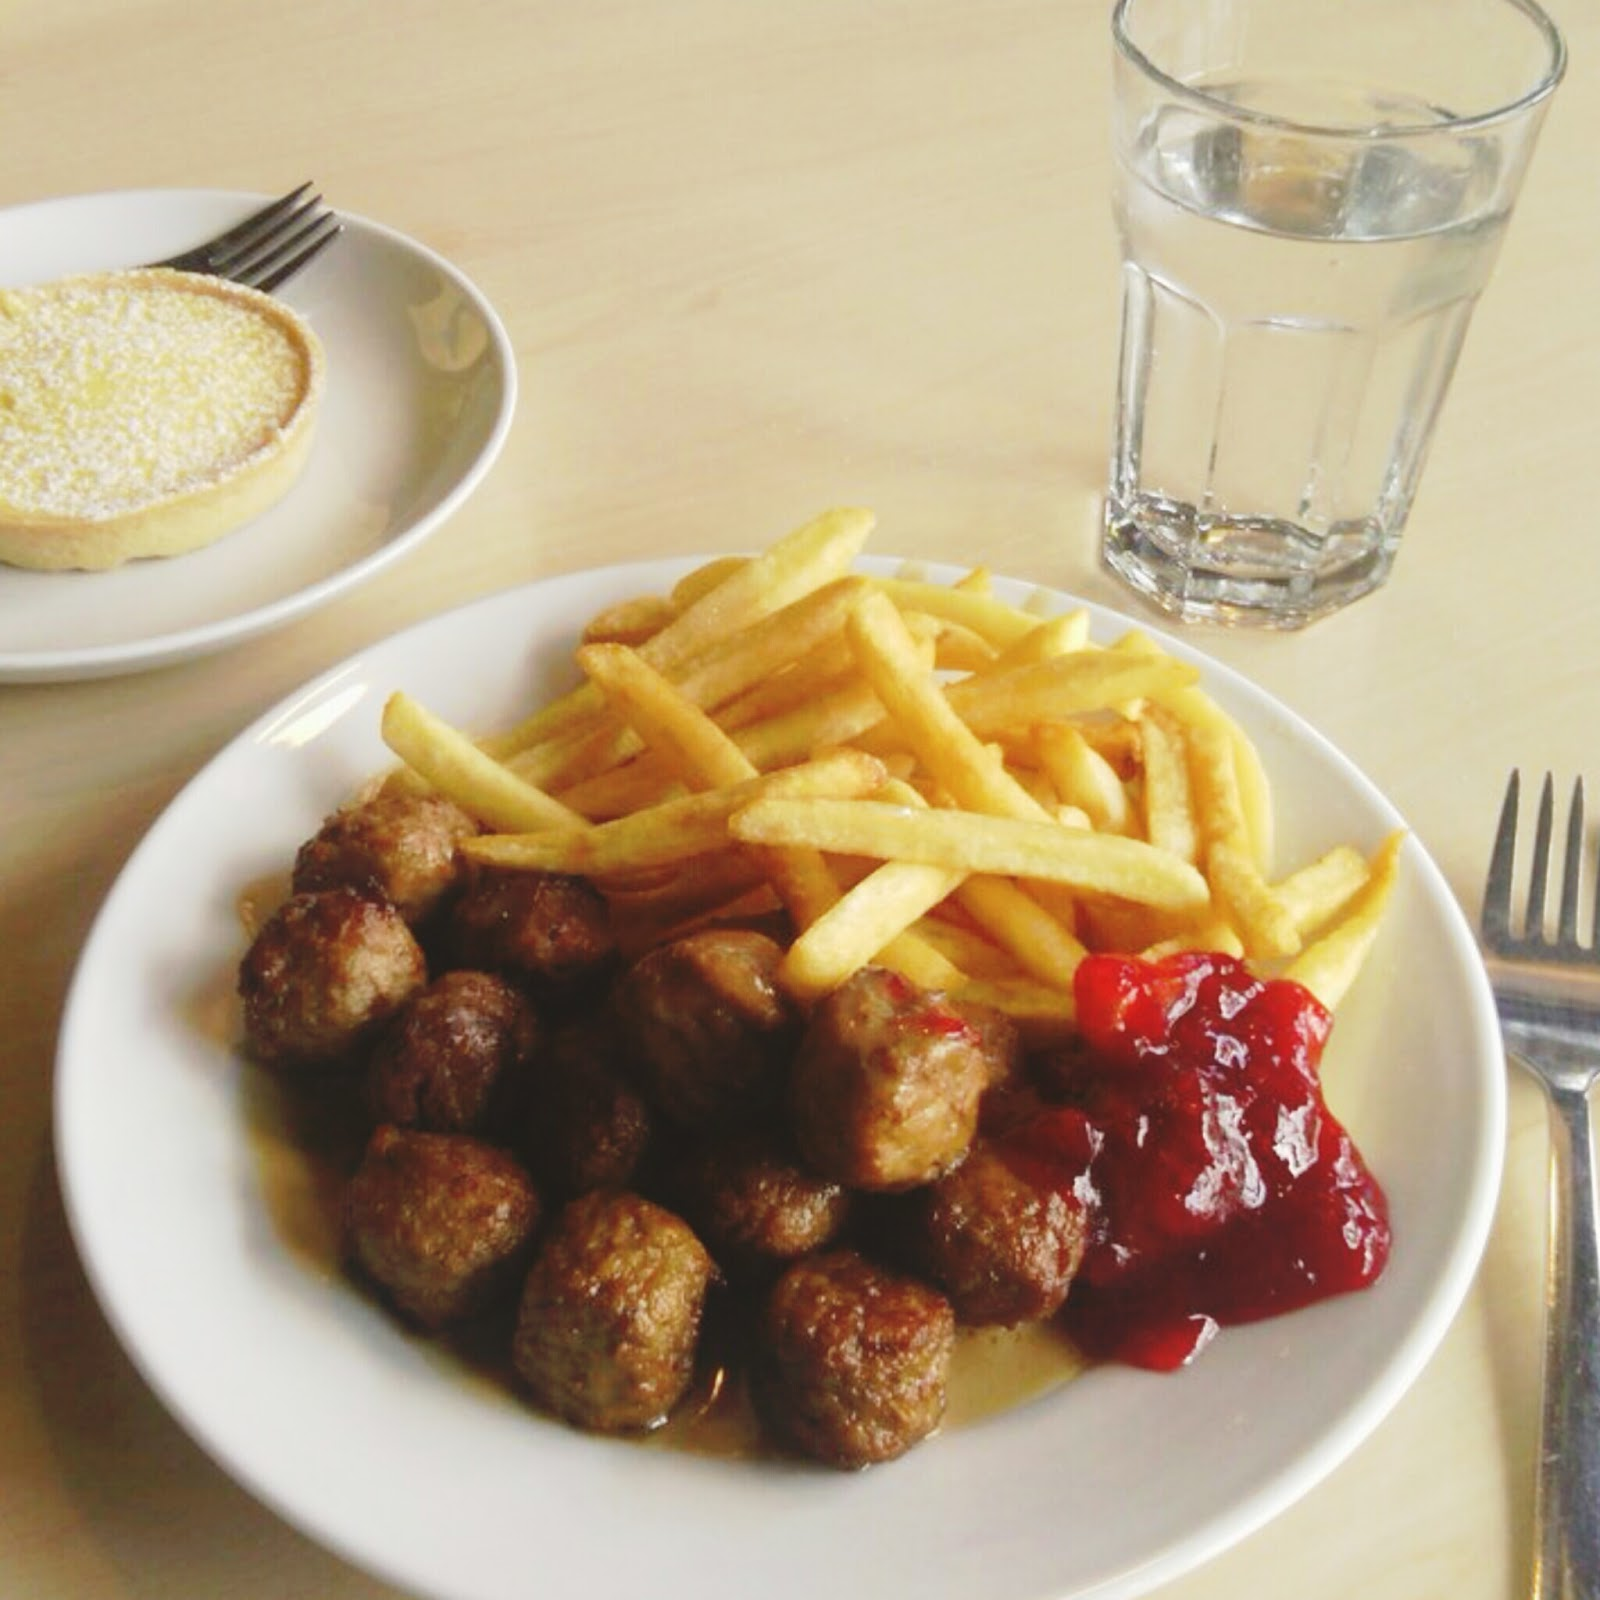 Around Here - Ikea meatballs for lunch.